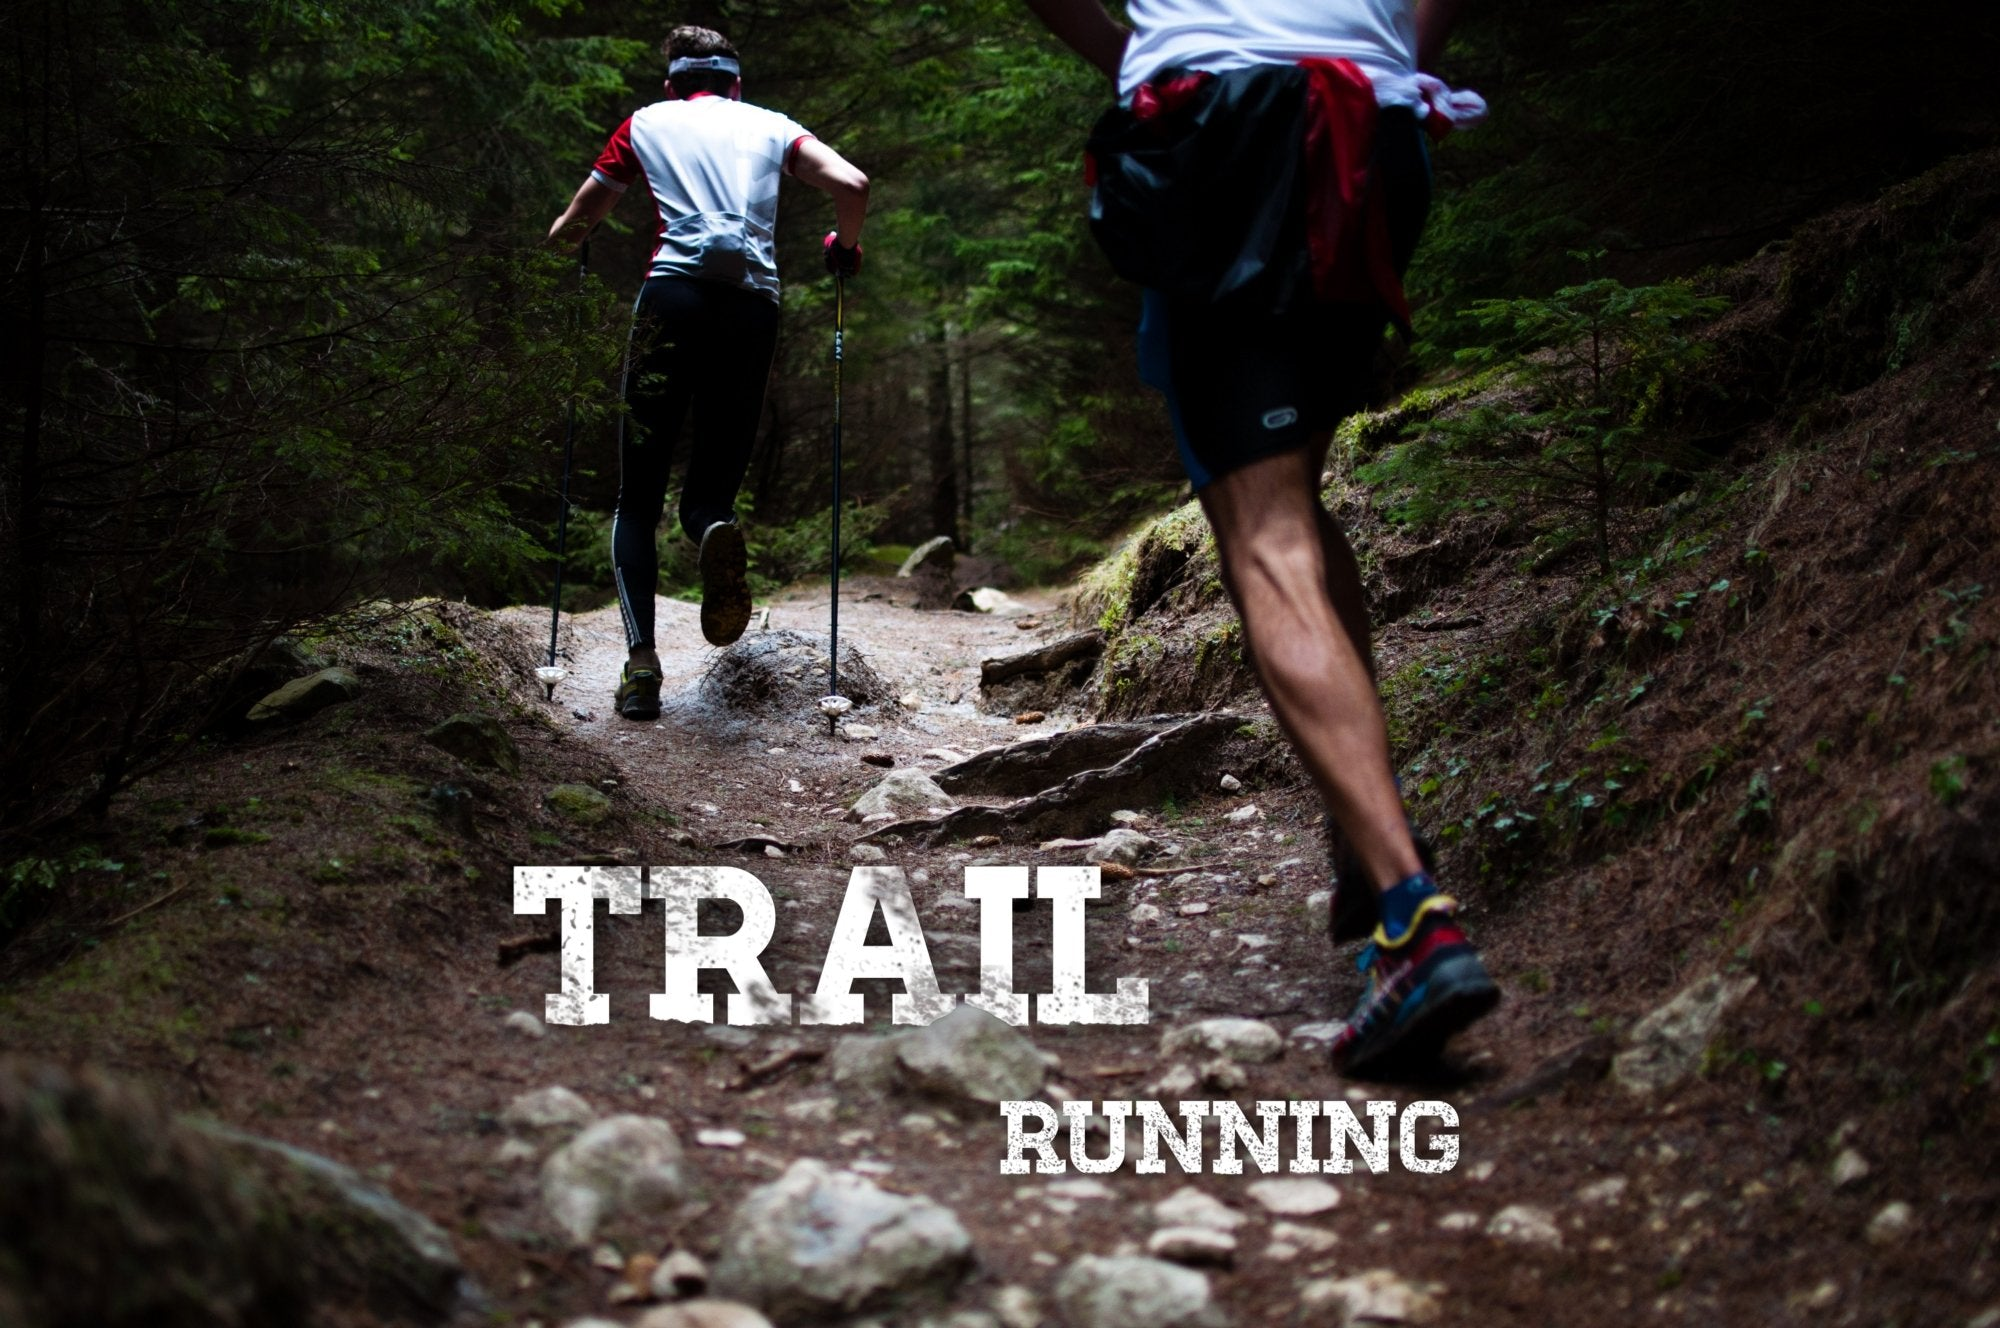 THE MOST EPIC TRAIL RUNNING VIDEOS